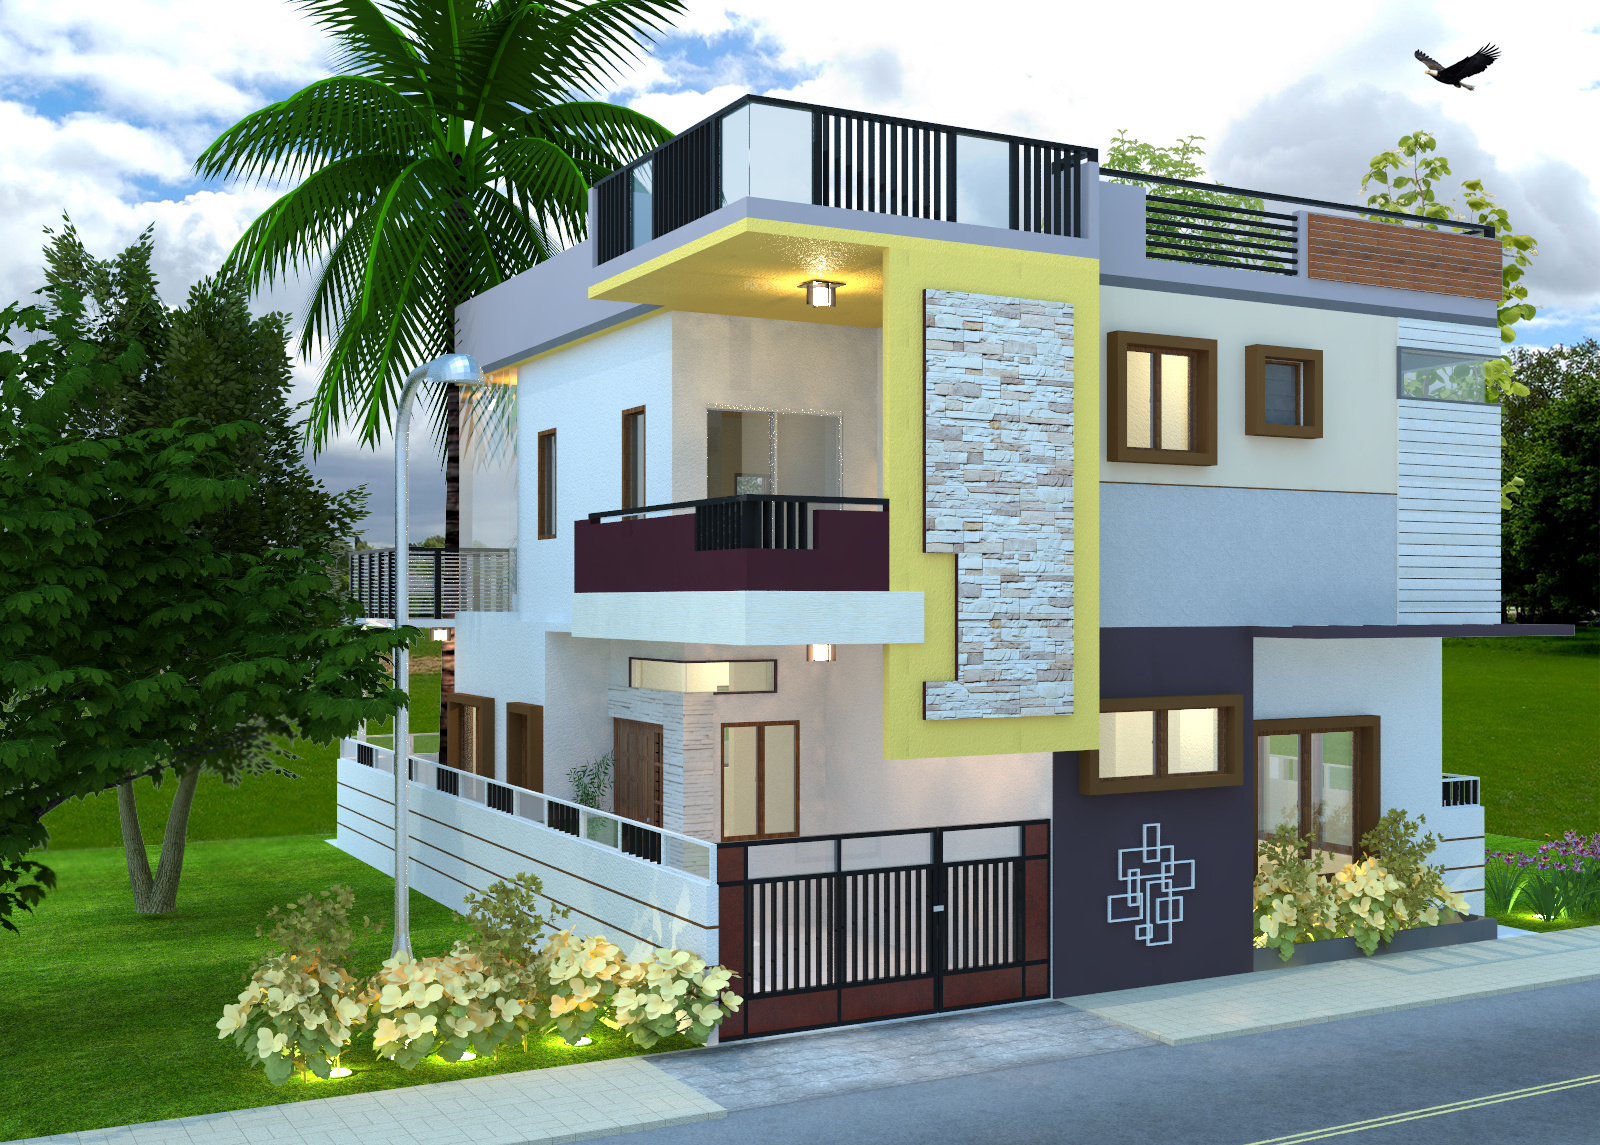 3600 sq ft 4 bhk 4t villa for sale in home land developers for 4 bhk villa interior design